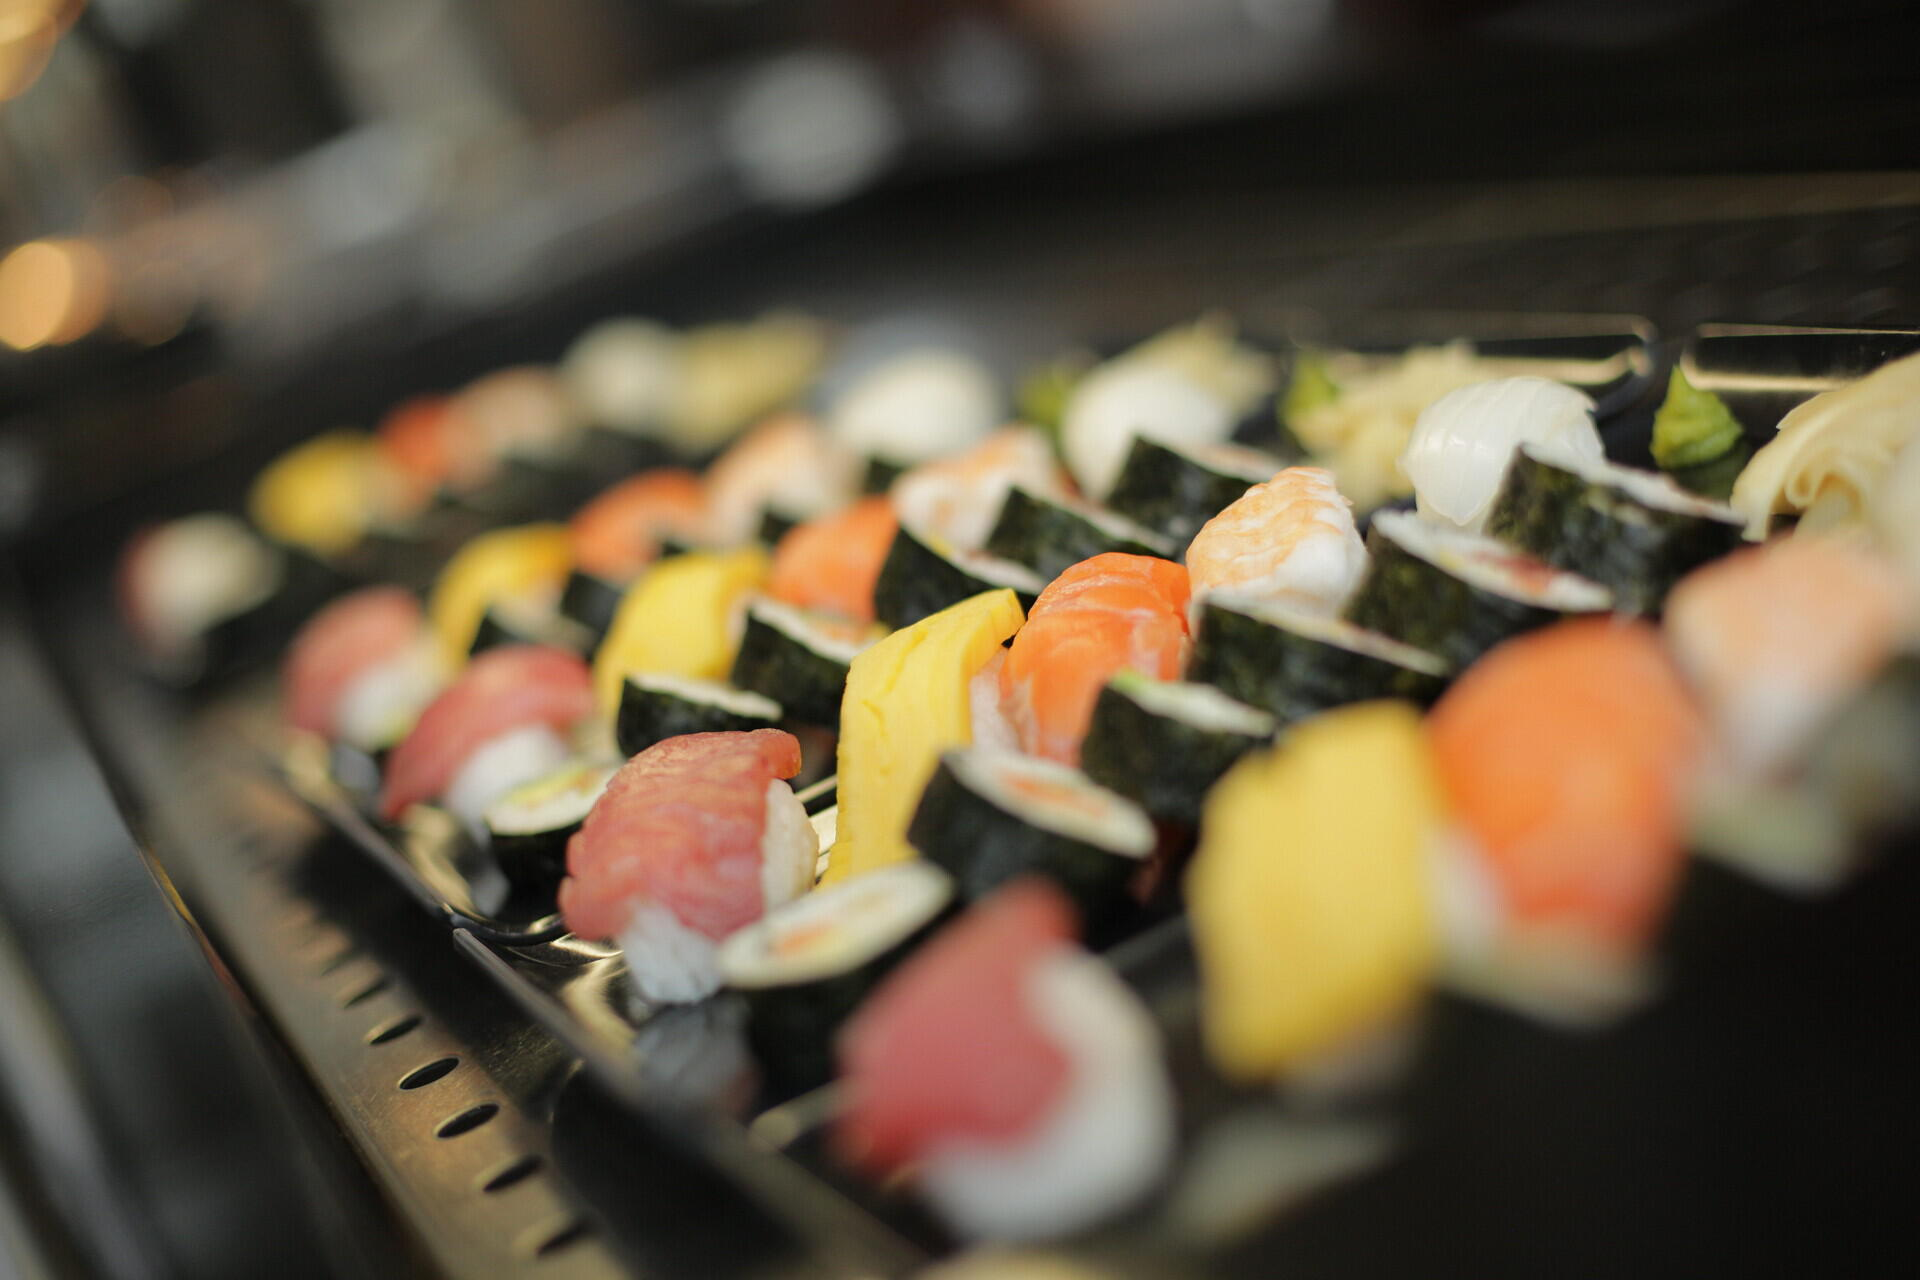 Sushi is one of our cooks' specialties